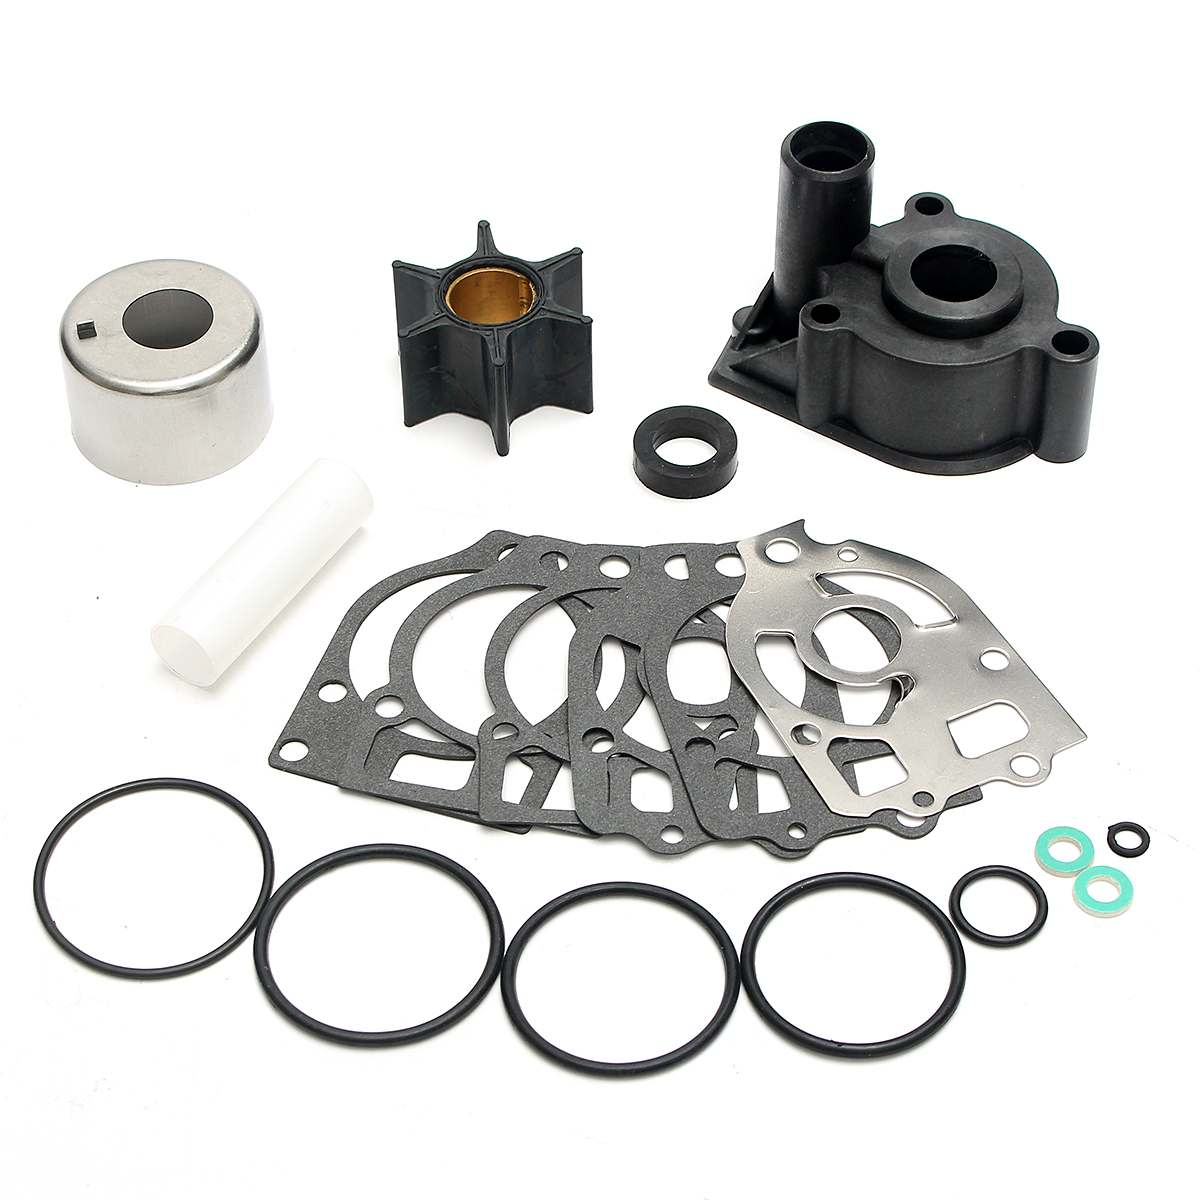 WATER PUMP IMPELLER KIT fits Mercury 115HP 90HP 4-Stroke 100HP 4 Cylinder Engine